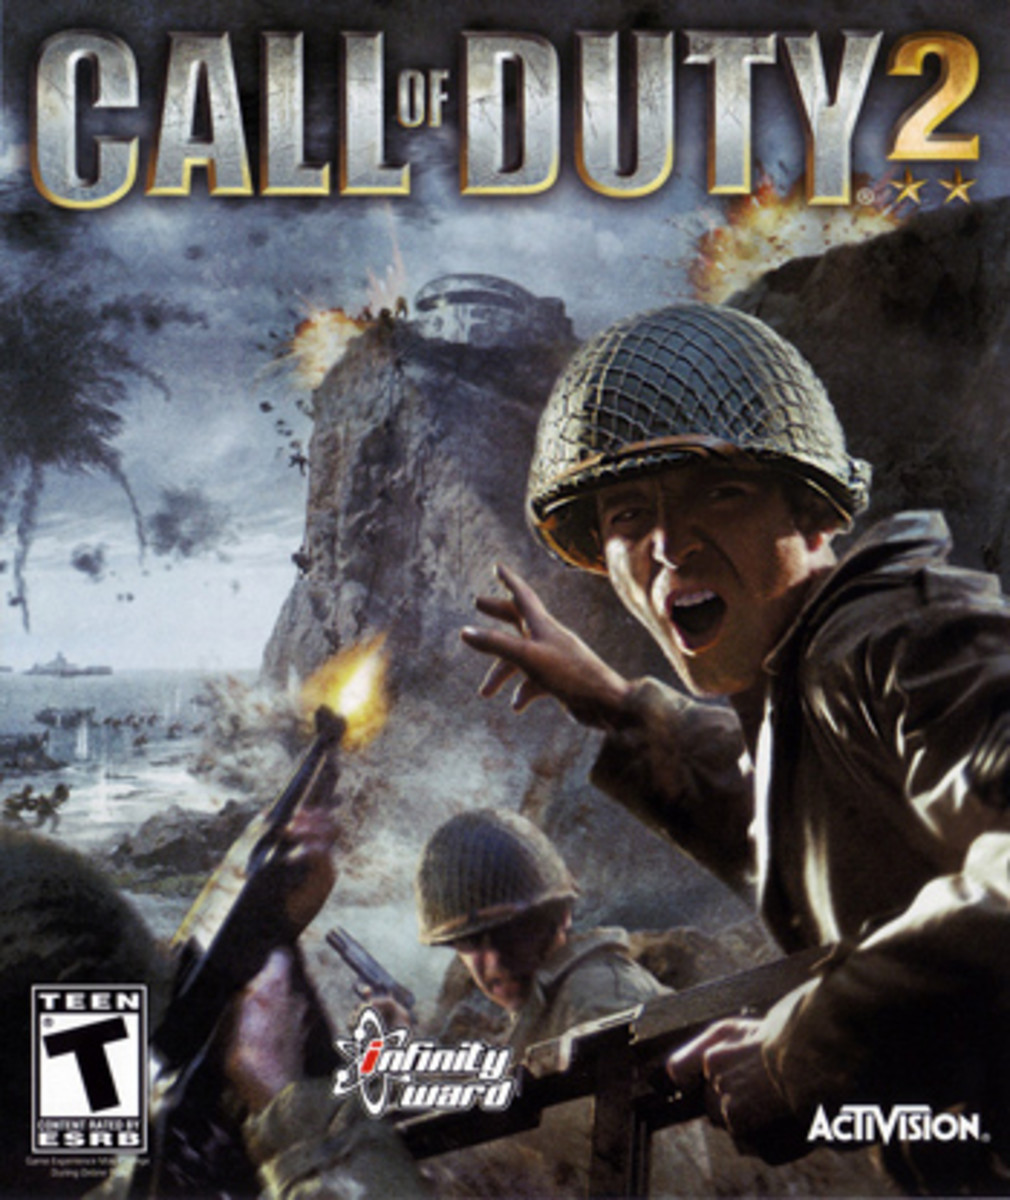 (Image of Call of Duty 2: Big Red One [October 25th, 2005] poster) - This is the poster that 'boots on the ground' Call of Duty players most think of when bringing the franchise into conversation - welcome, all Call of Duty player traditionalists